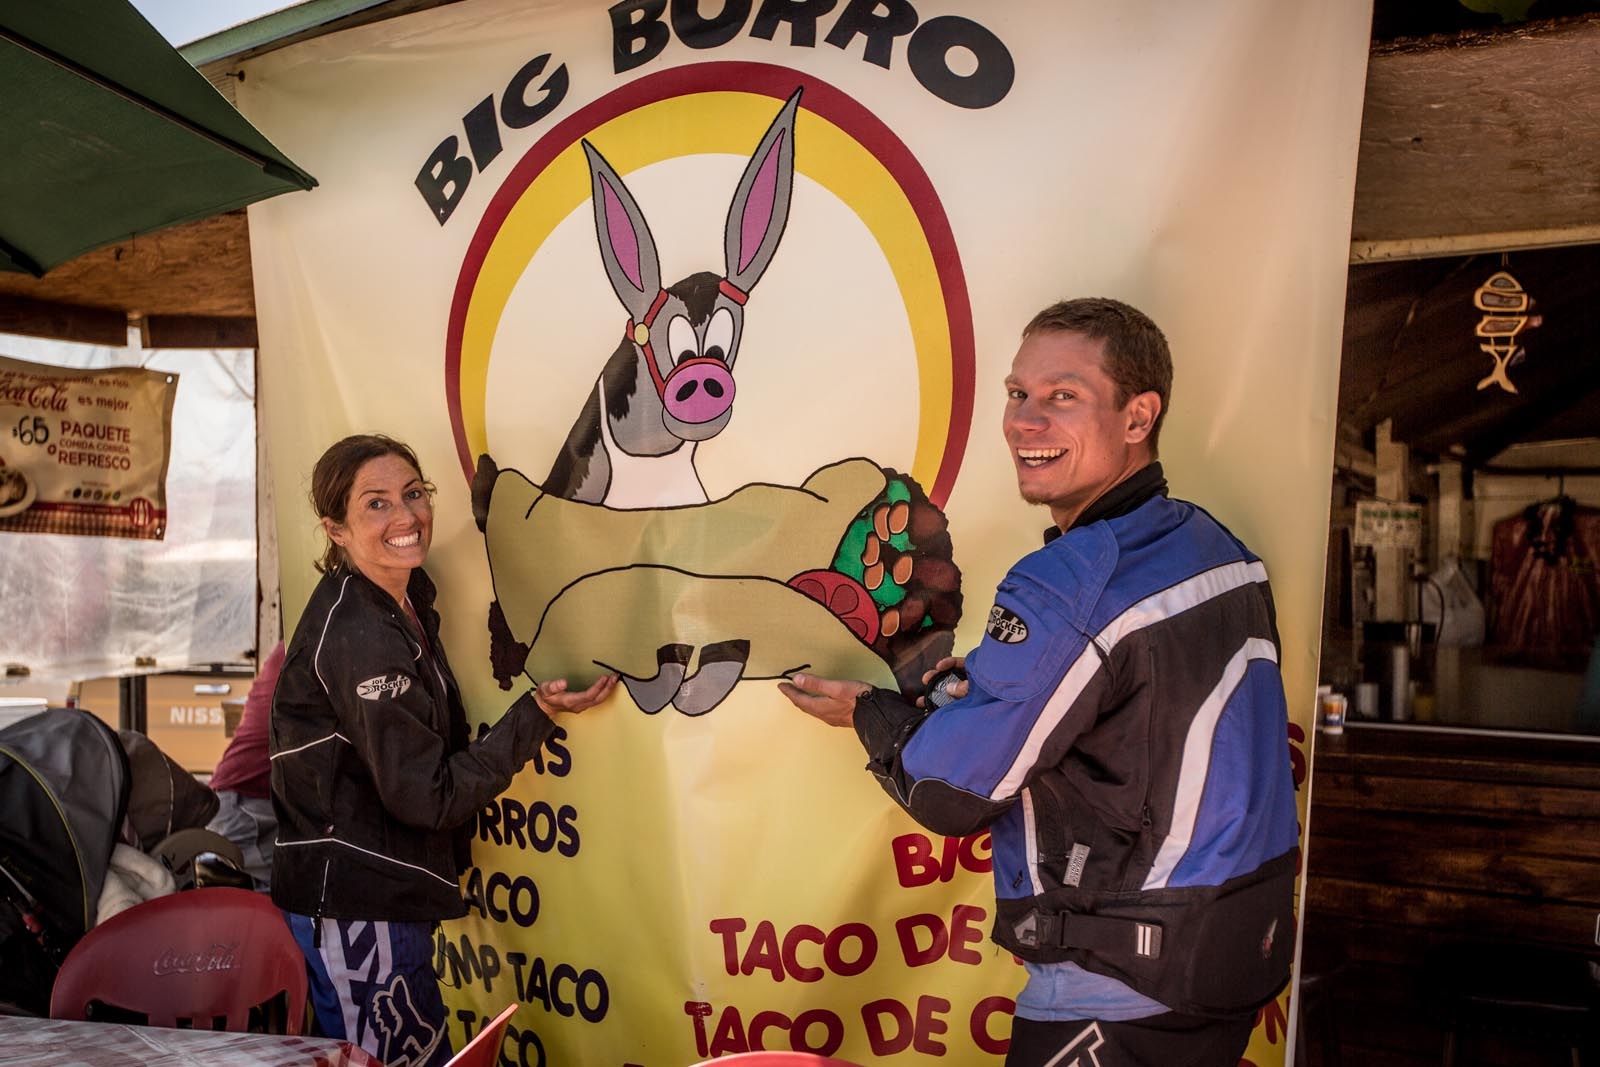 Let us help you hold the big burro, Big Burro :)